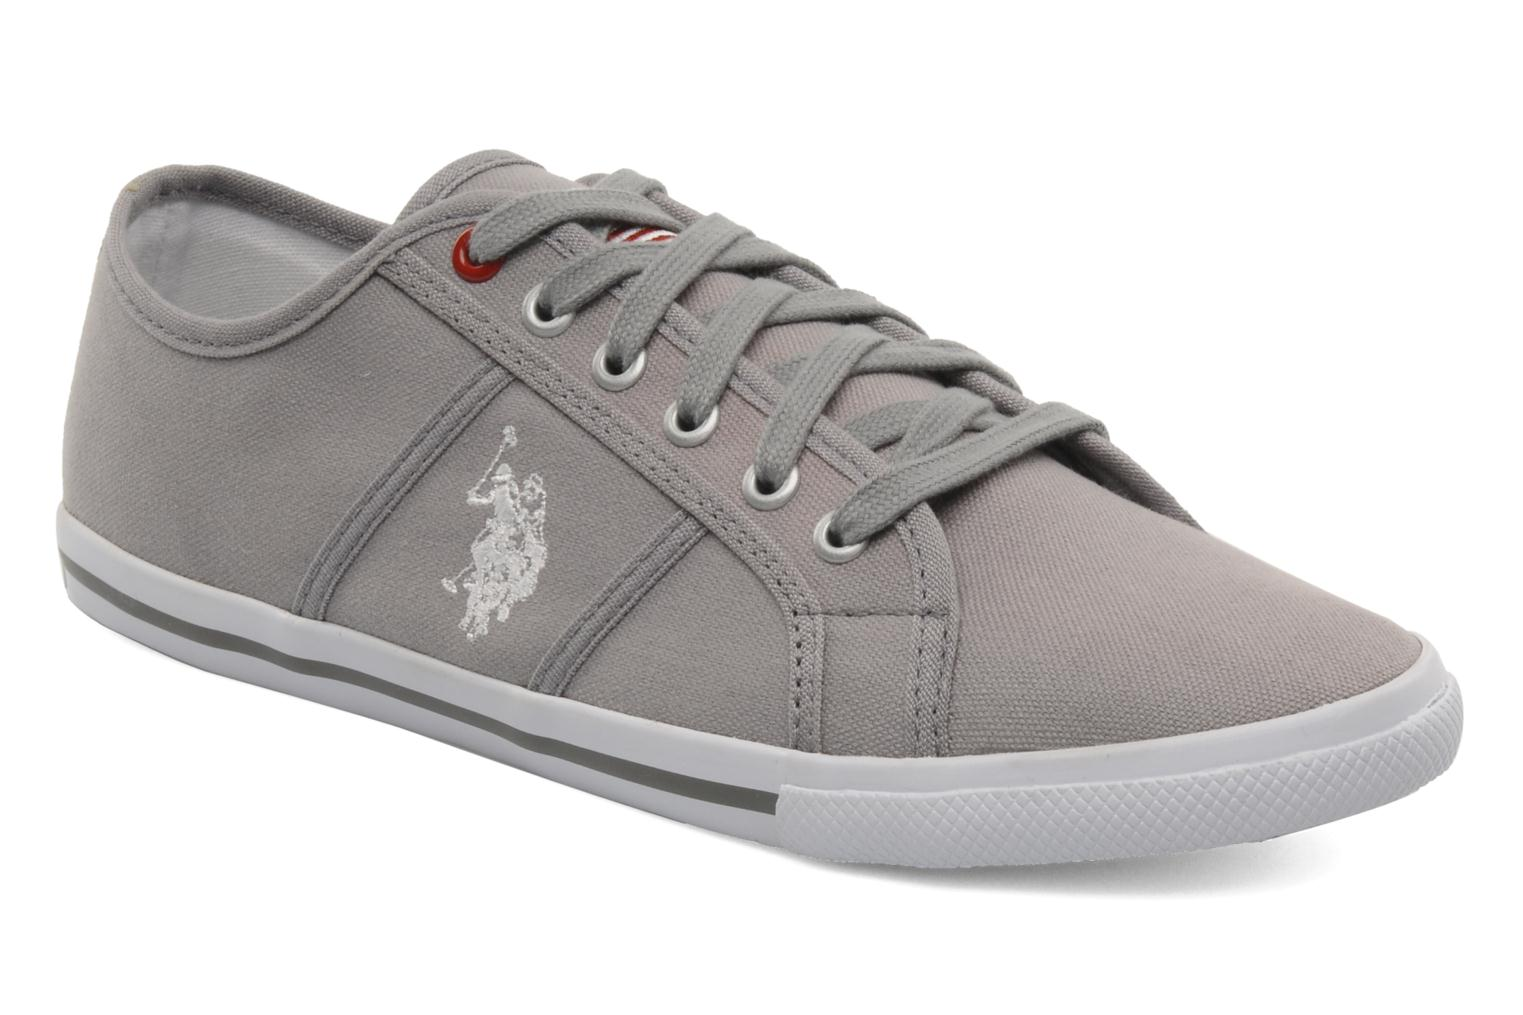 Sneakers Bud by U.S Polo Assn.